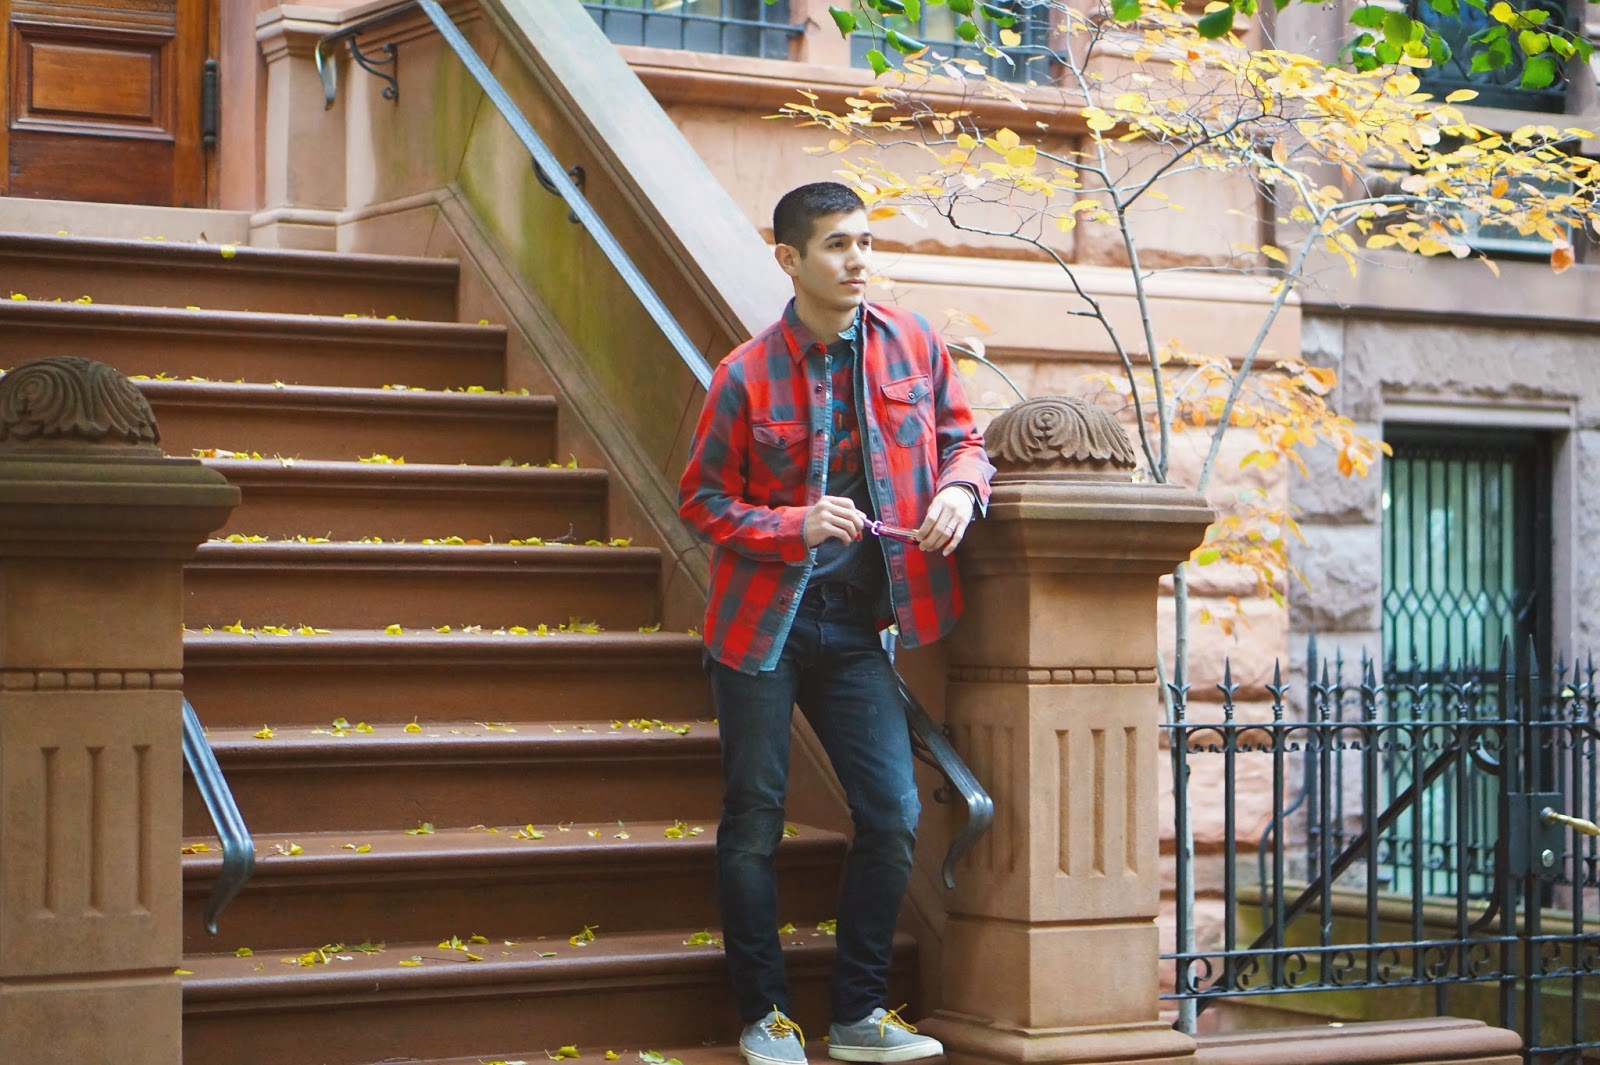 963ca8f9 Wearing: J. Crew Wallace and Barnes Buffalo Plaid Flannel | J. Crew  Selvedge Japanese Denim Workshirt | American Eagle Outfitters Graphic Tee |  3x1 M5 ...